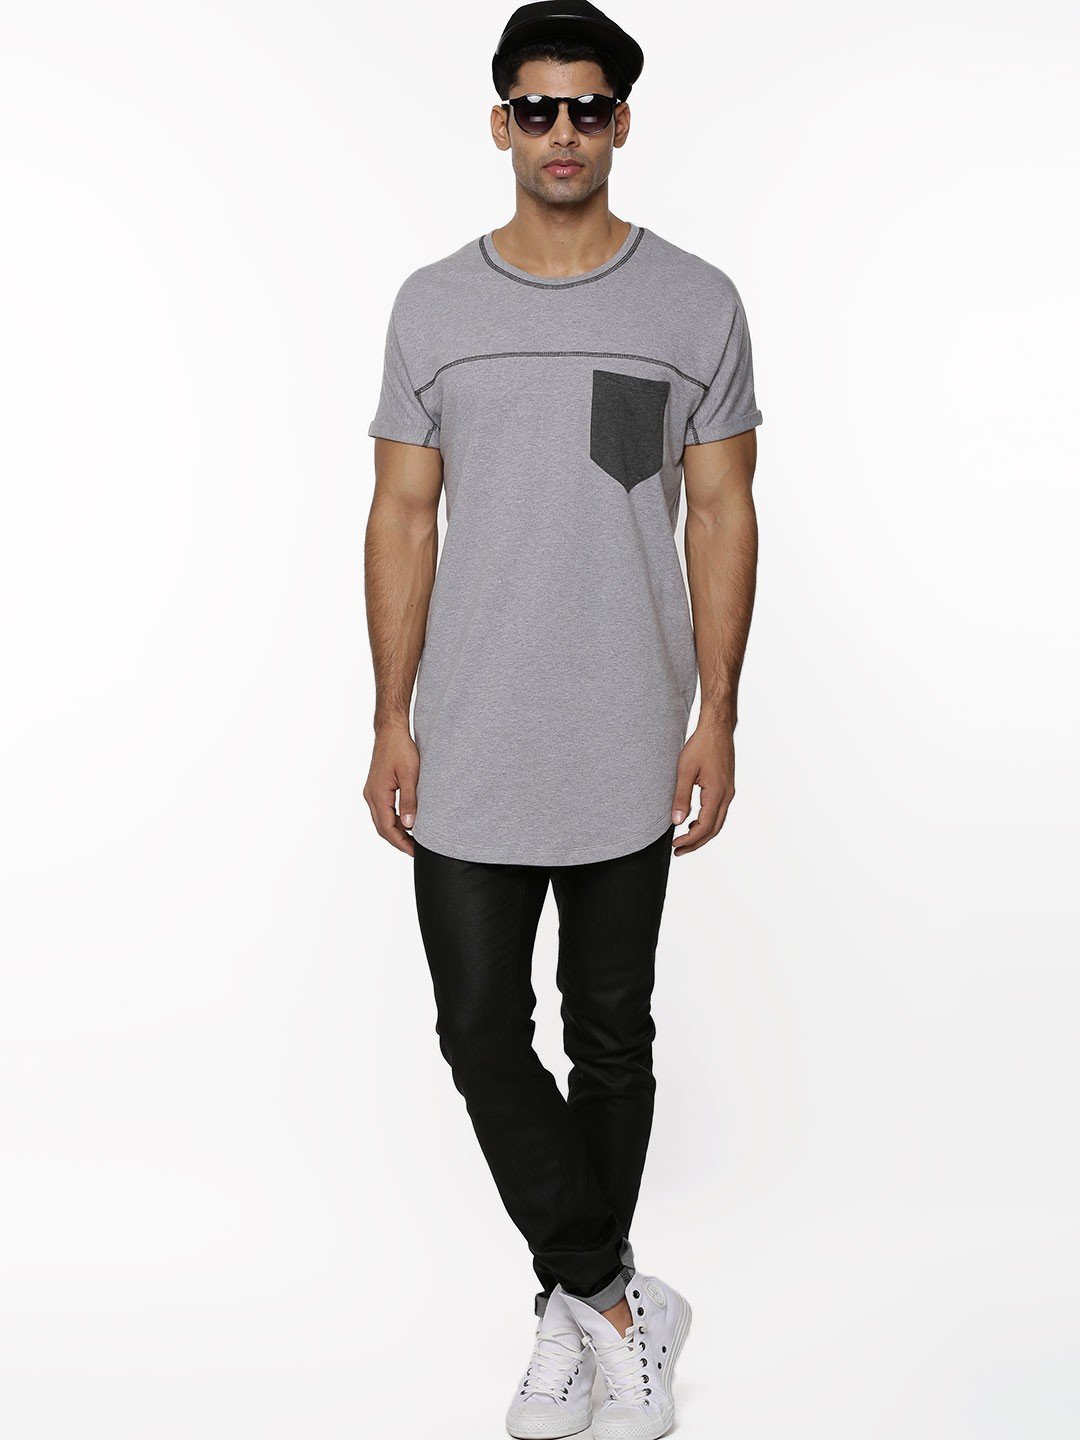 Over-sized tee for men